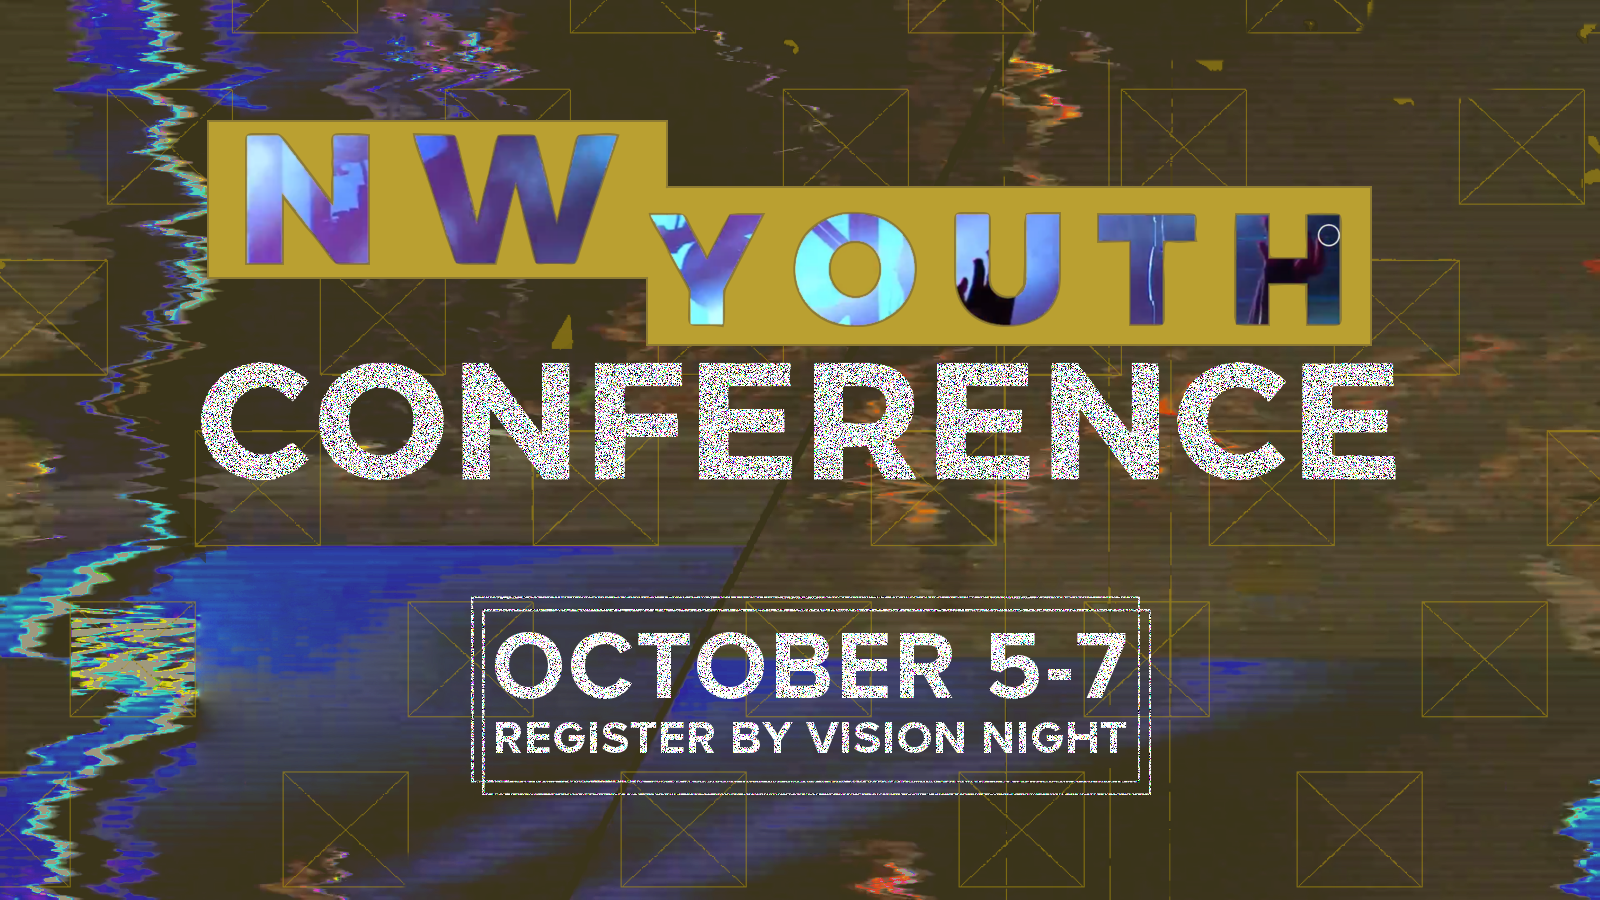 Nw youth conference 2017 16x9